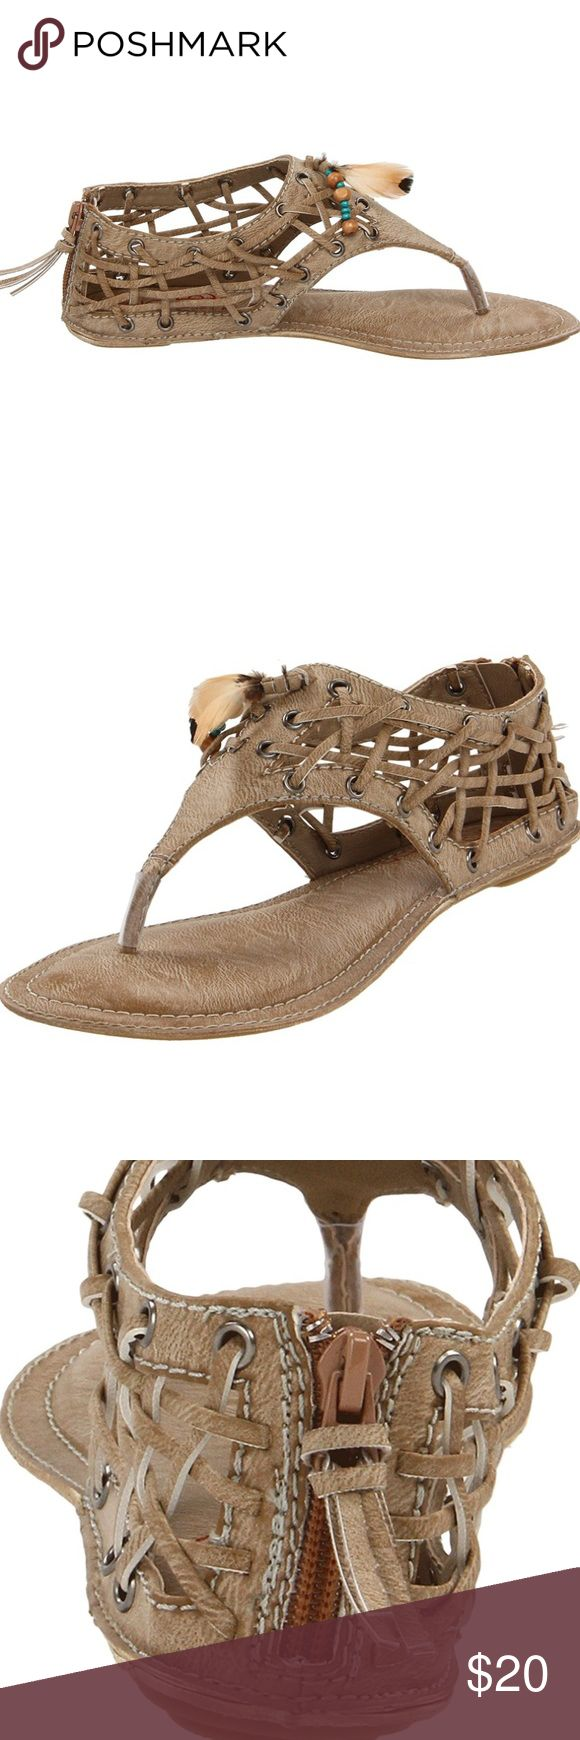 25+ best ideas about Big Buddha Shoes on Pinterest   Tribal shoes ...